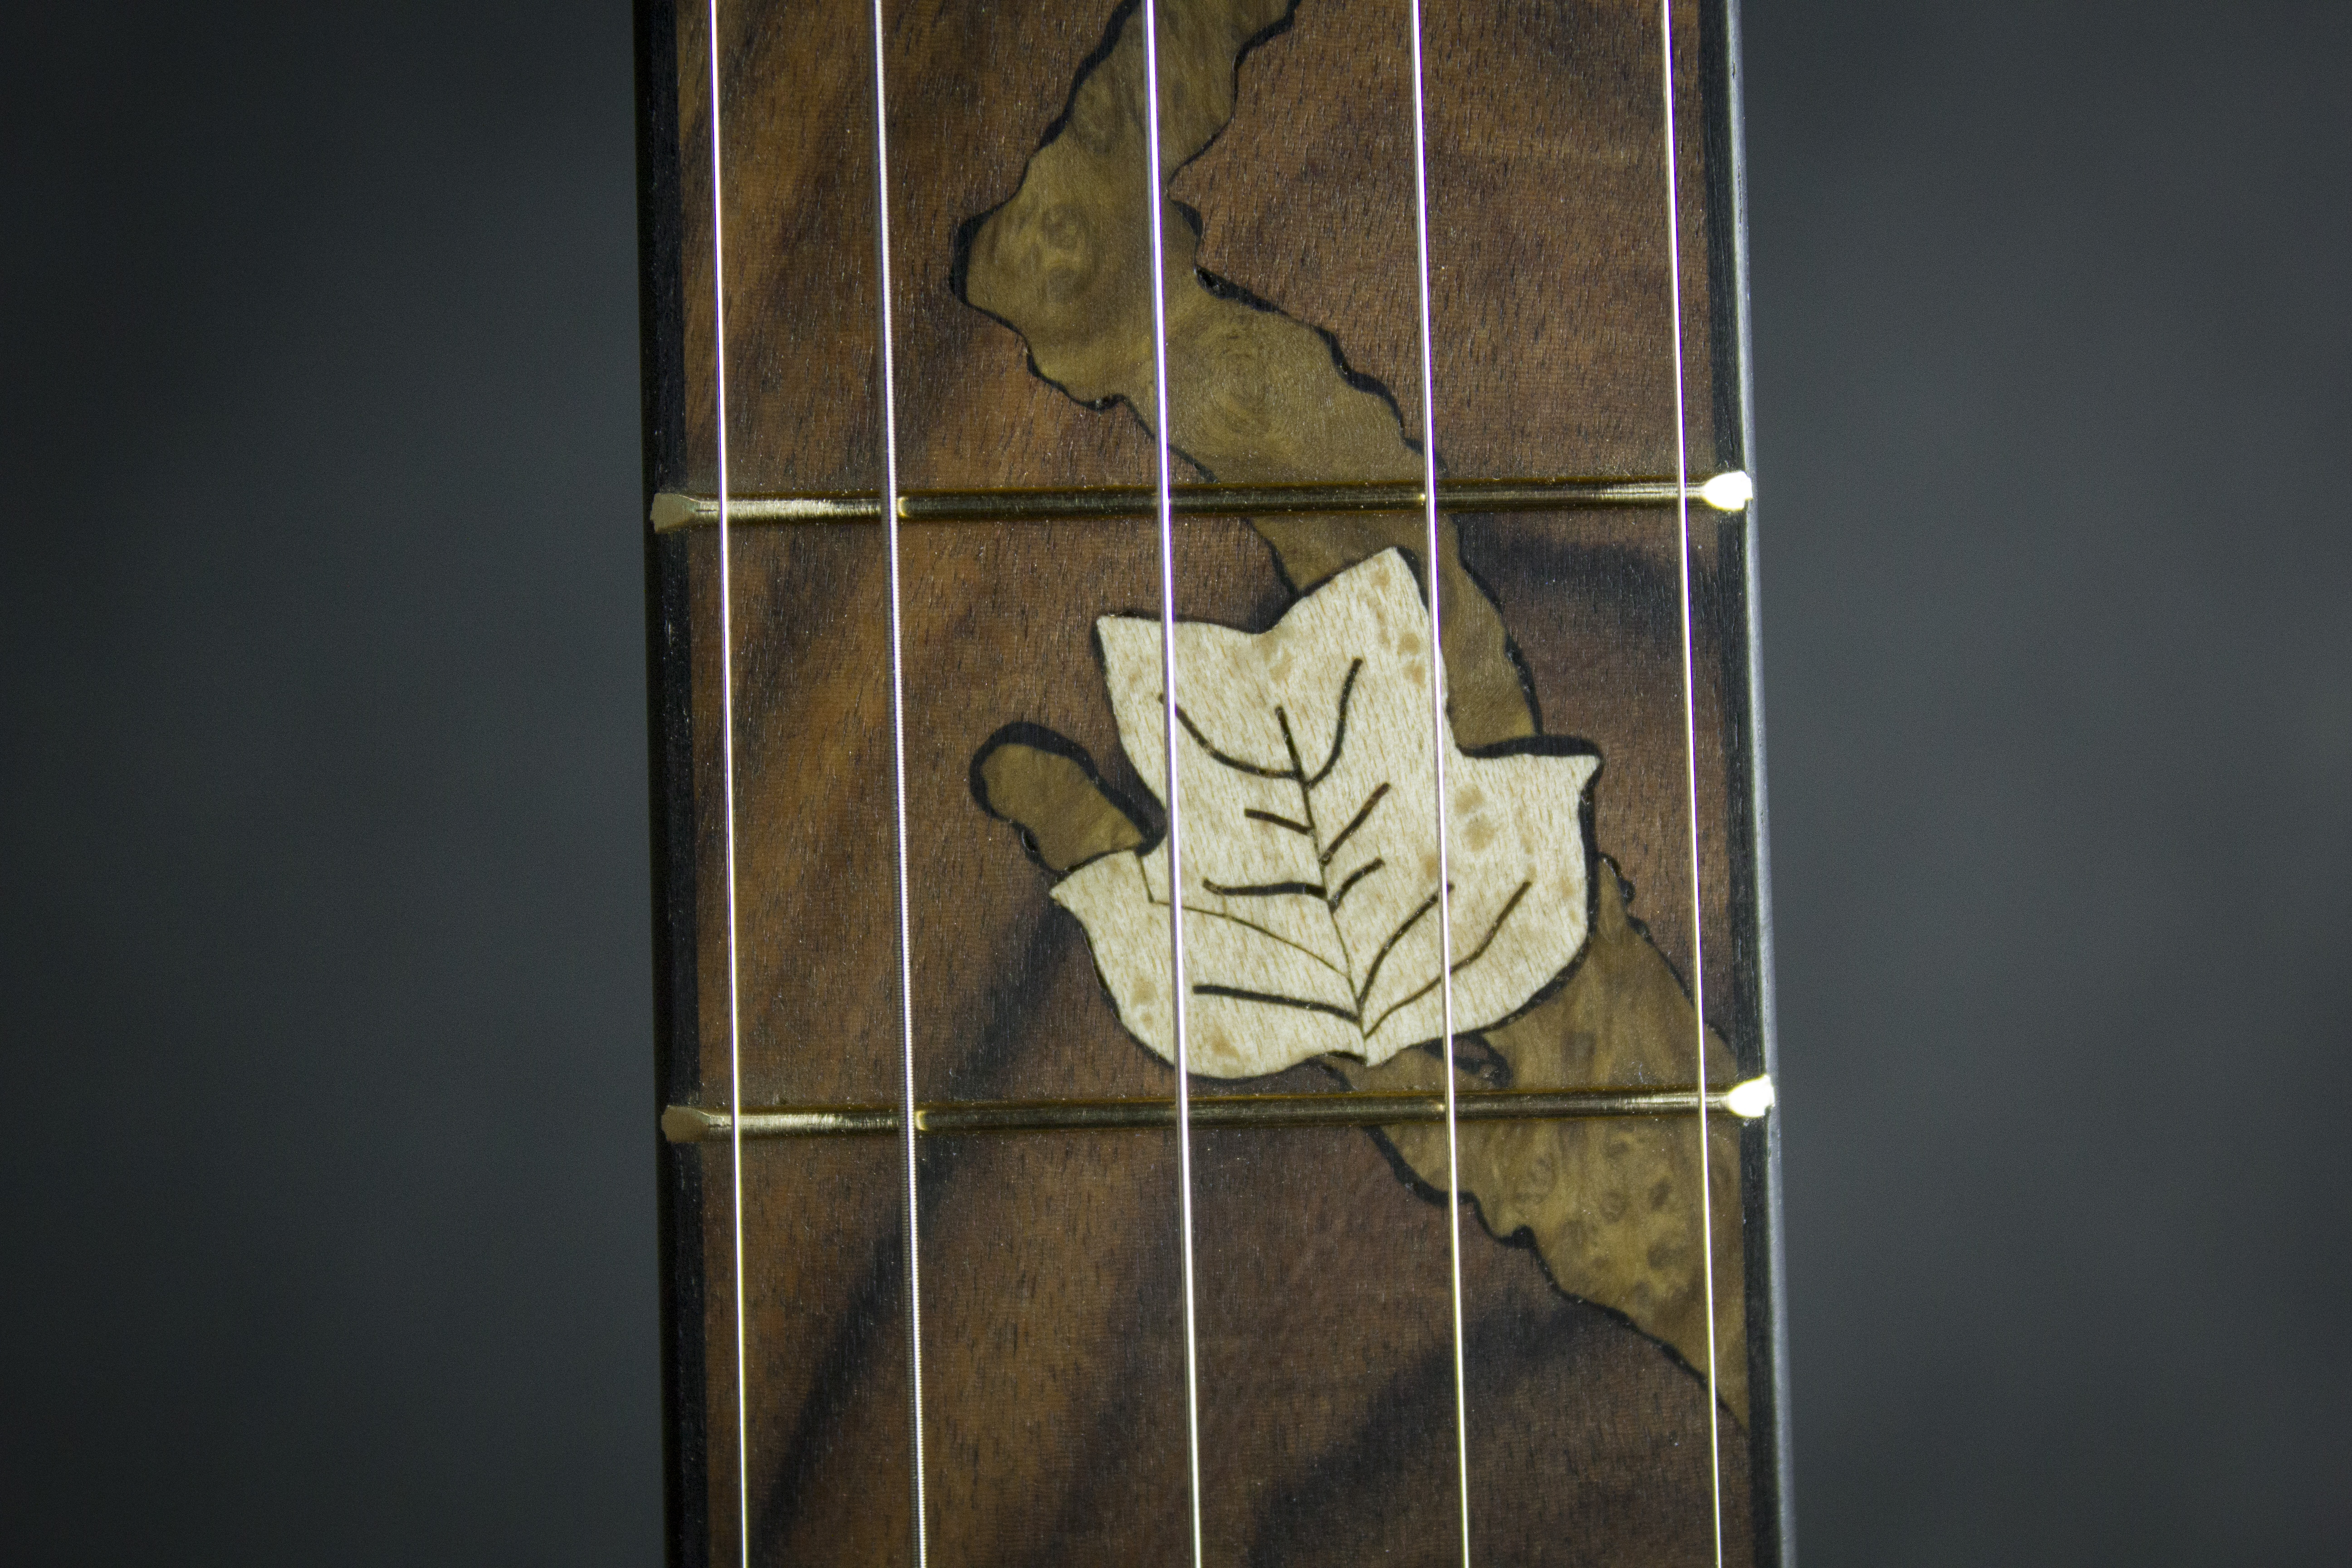 Leaves Banjo Inlay detail3